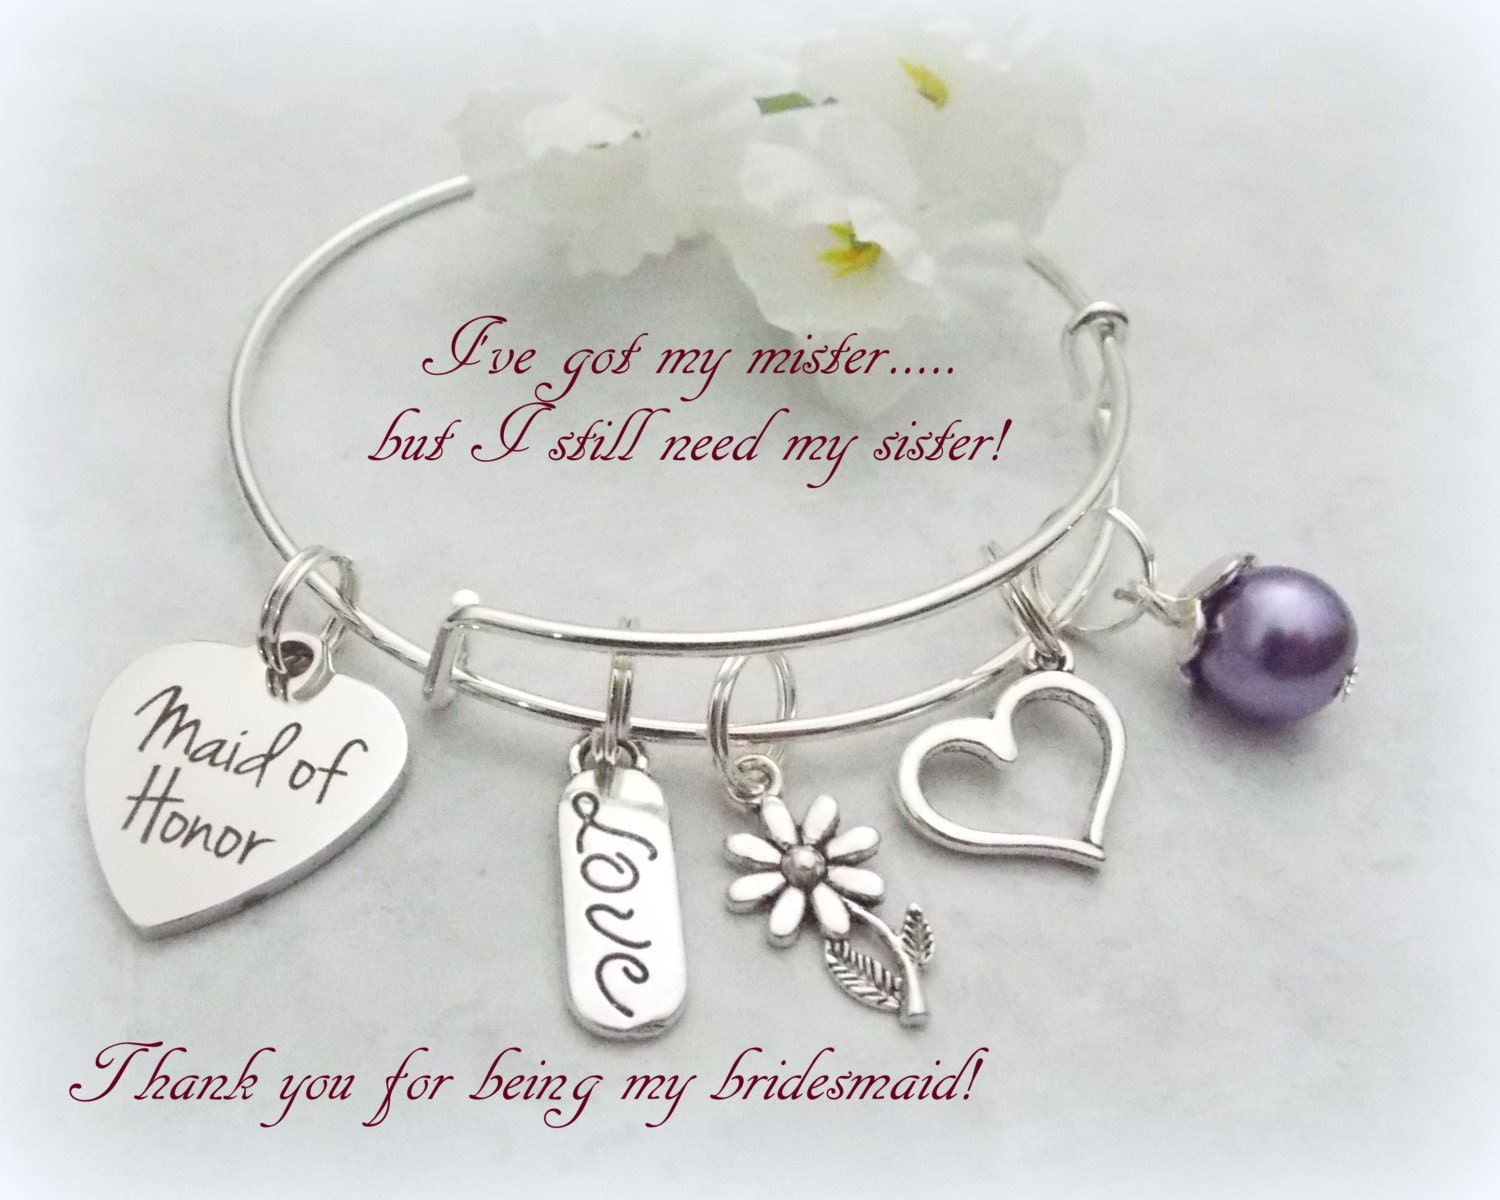 Bride Gift Maid Of Honor Gift Maid Of Honor Bracelet Gift From Bride